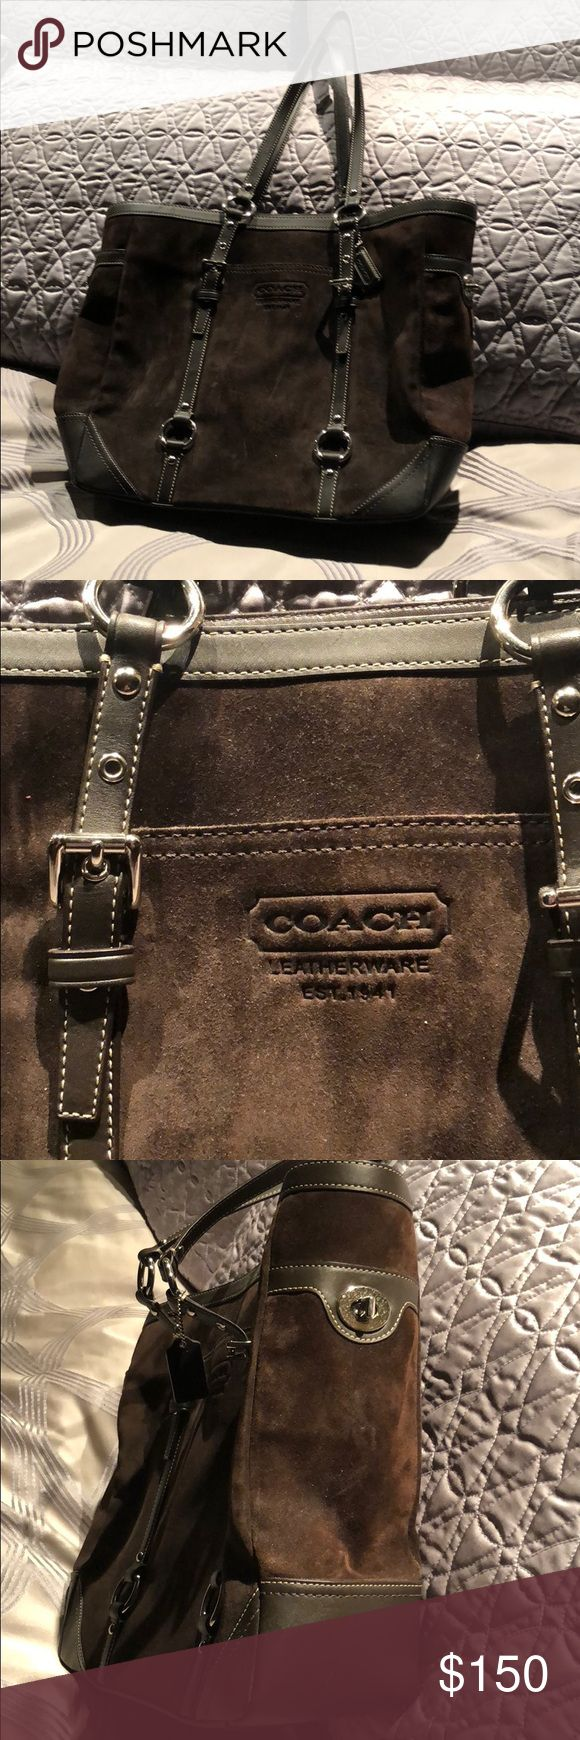 Suede Coach Shoulder Bag Brown suede Authentic Coach pocketbook with silver hardware  Gently used with a little discoloration on the back of purse. Used 2-3 times Coach Bags Shoulder Bags